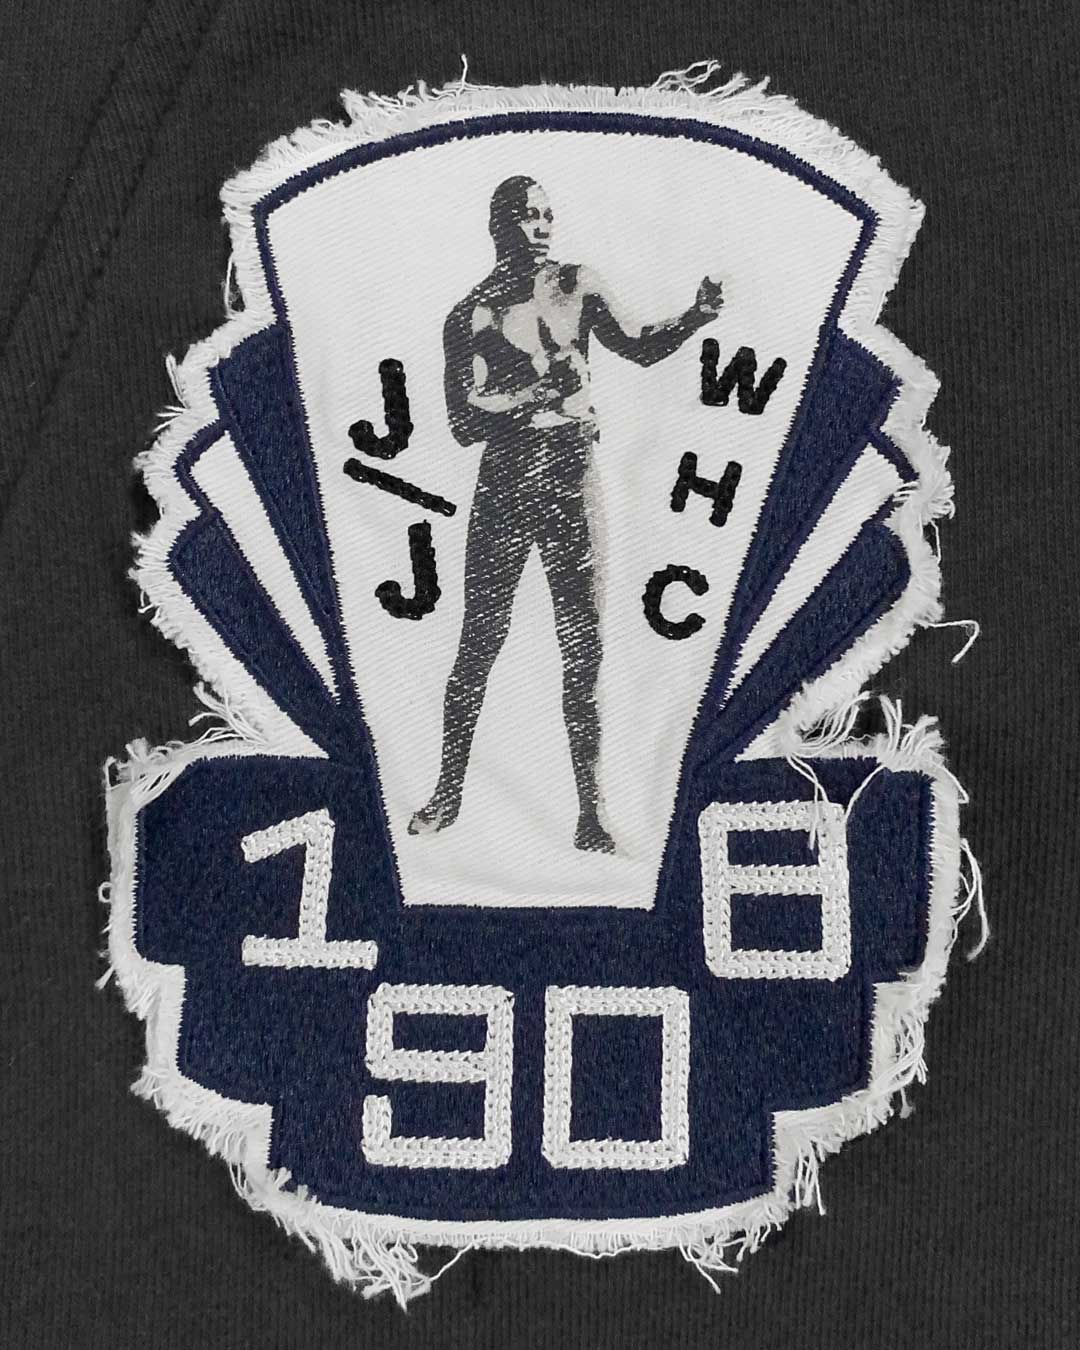 Jack Johnson Cardigan - Roots of Inc dba Roots of Fight